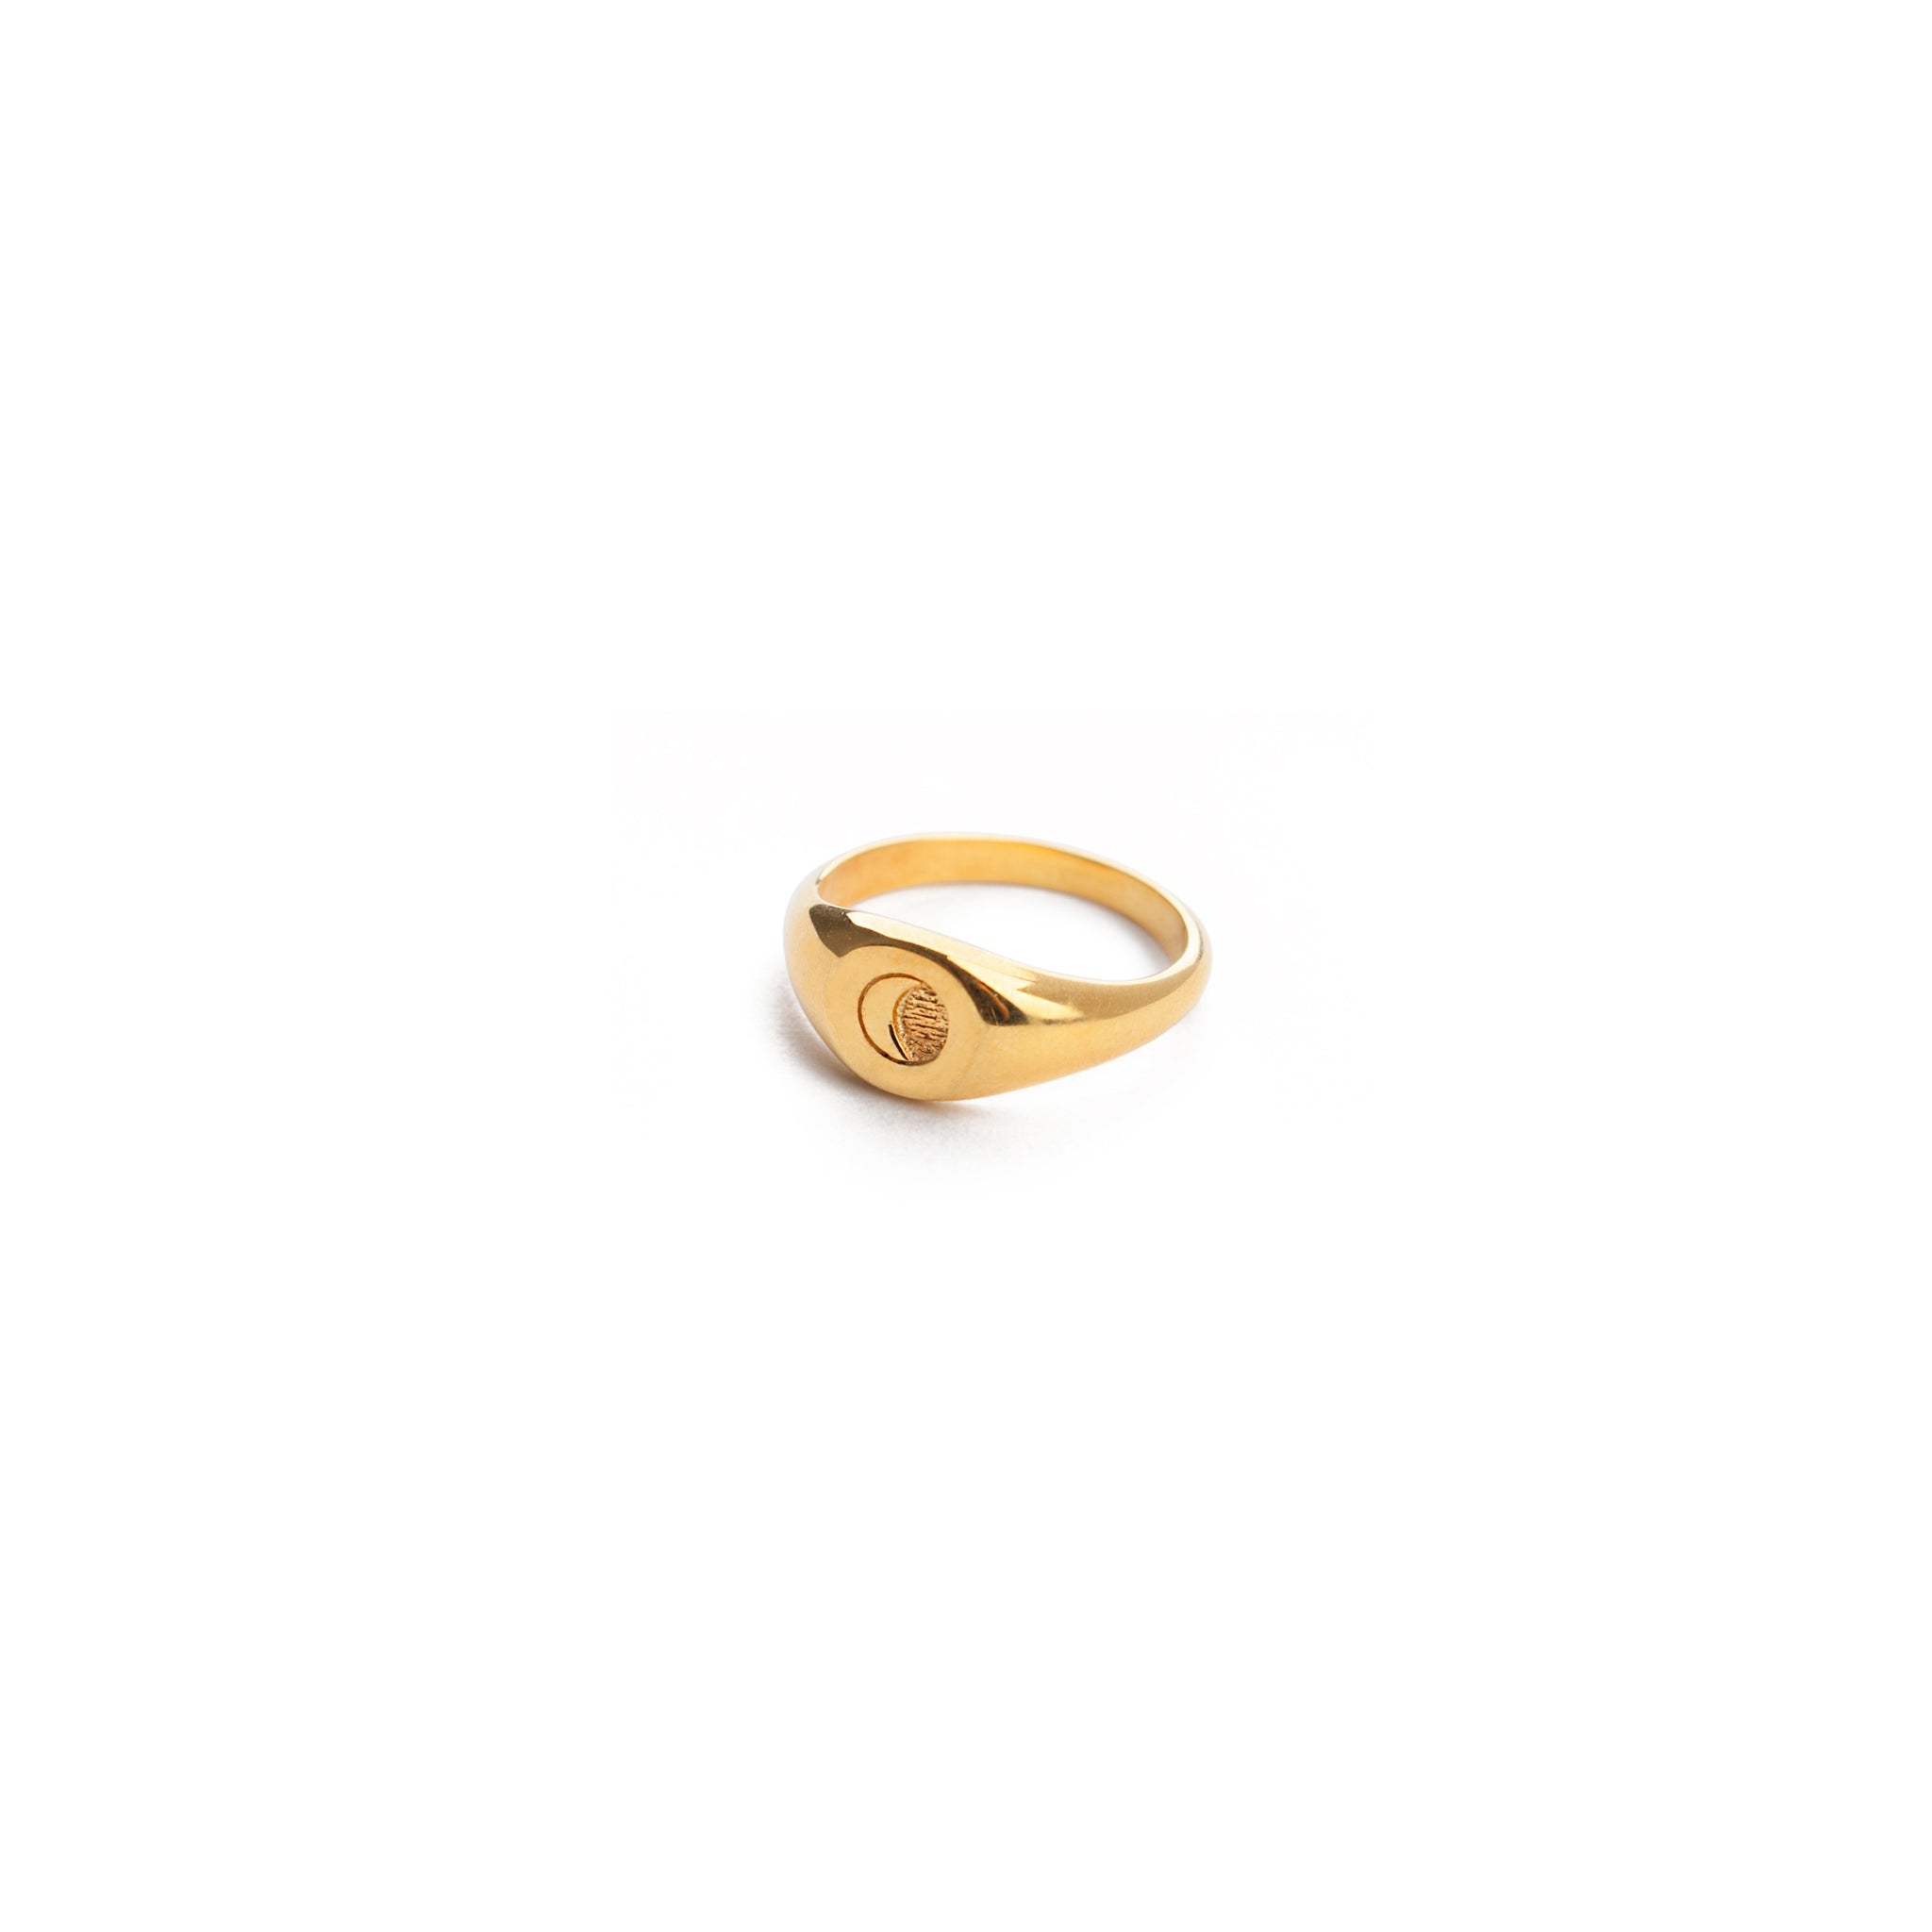 Moonrise Signet Ring - Jewel Rocks